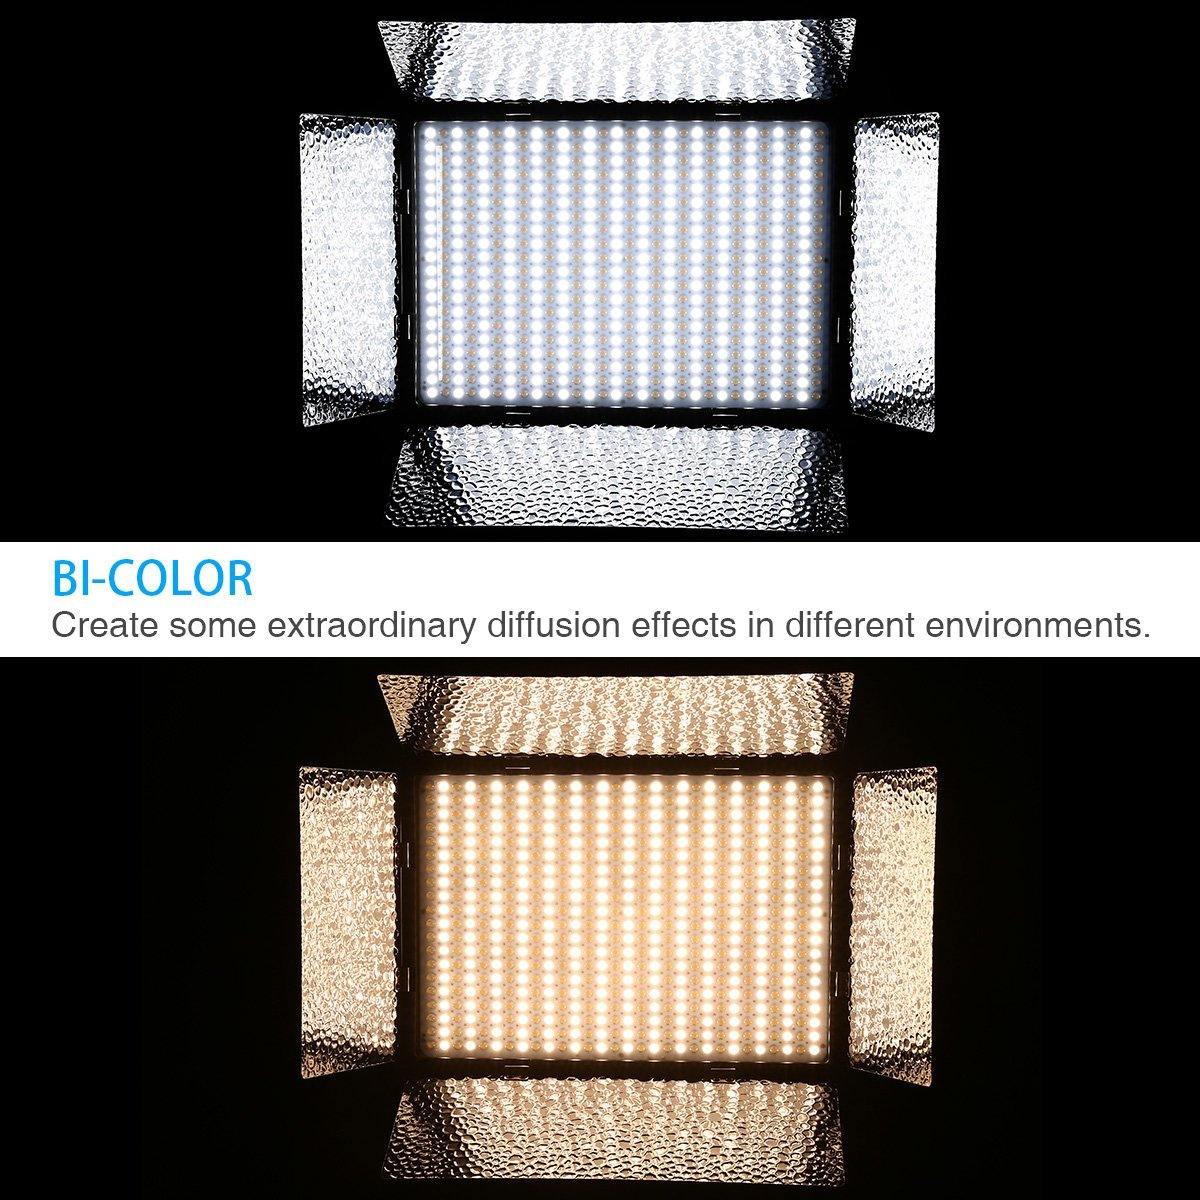 Powerextra 900 Beads Cri 96 Bi Color Dommable Led Video Light